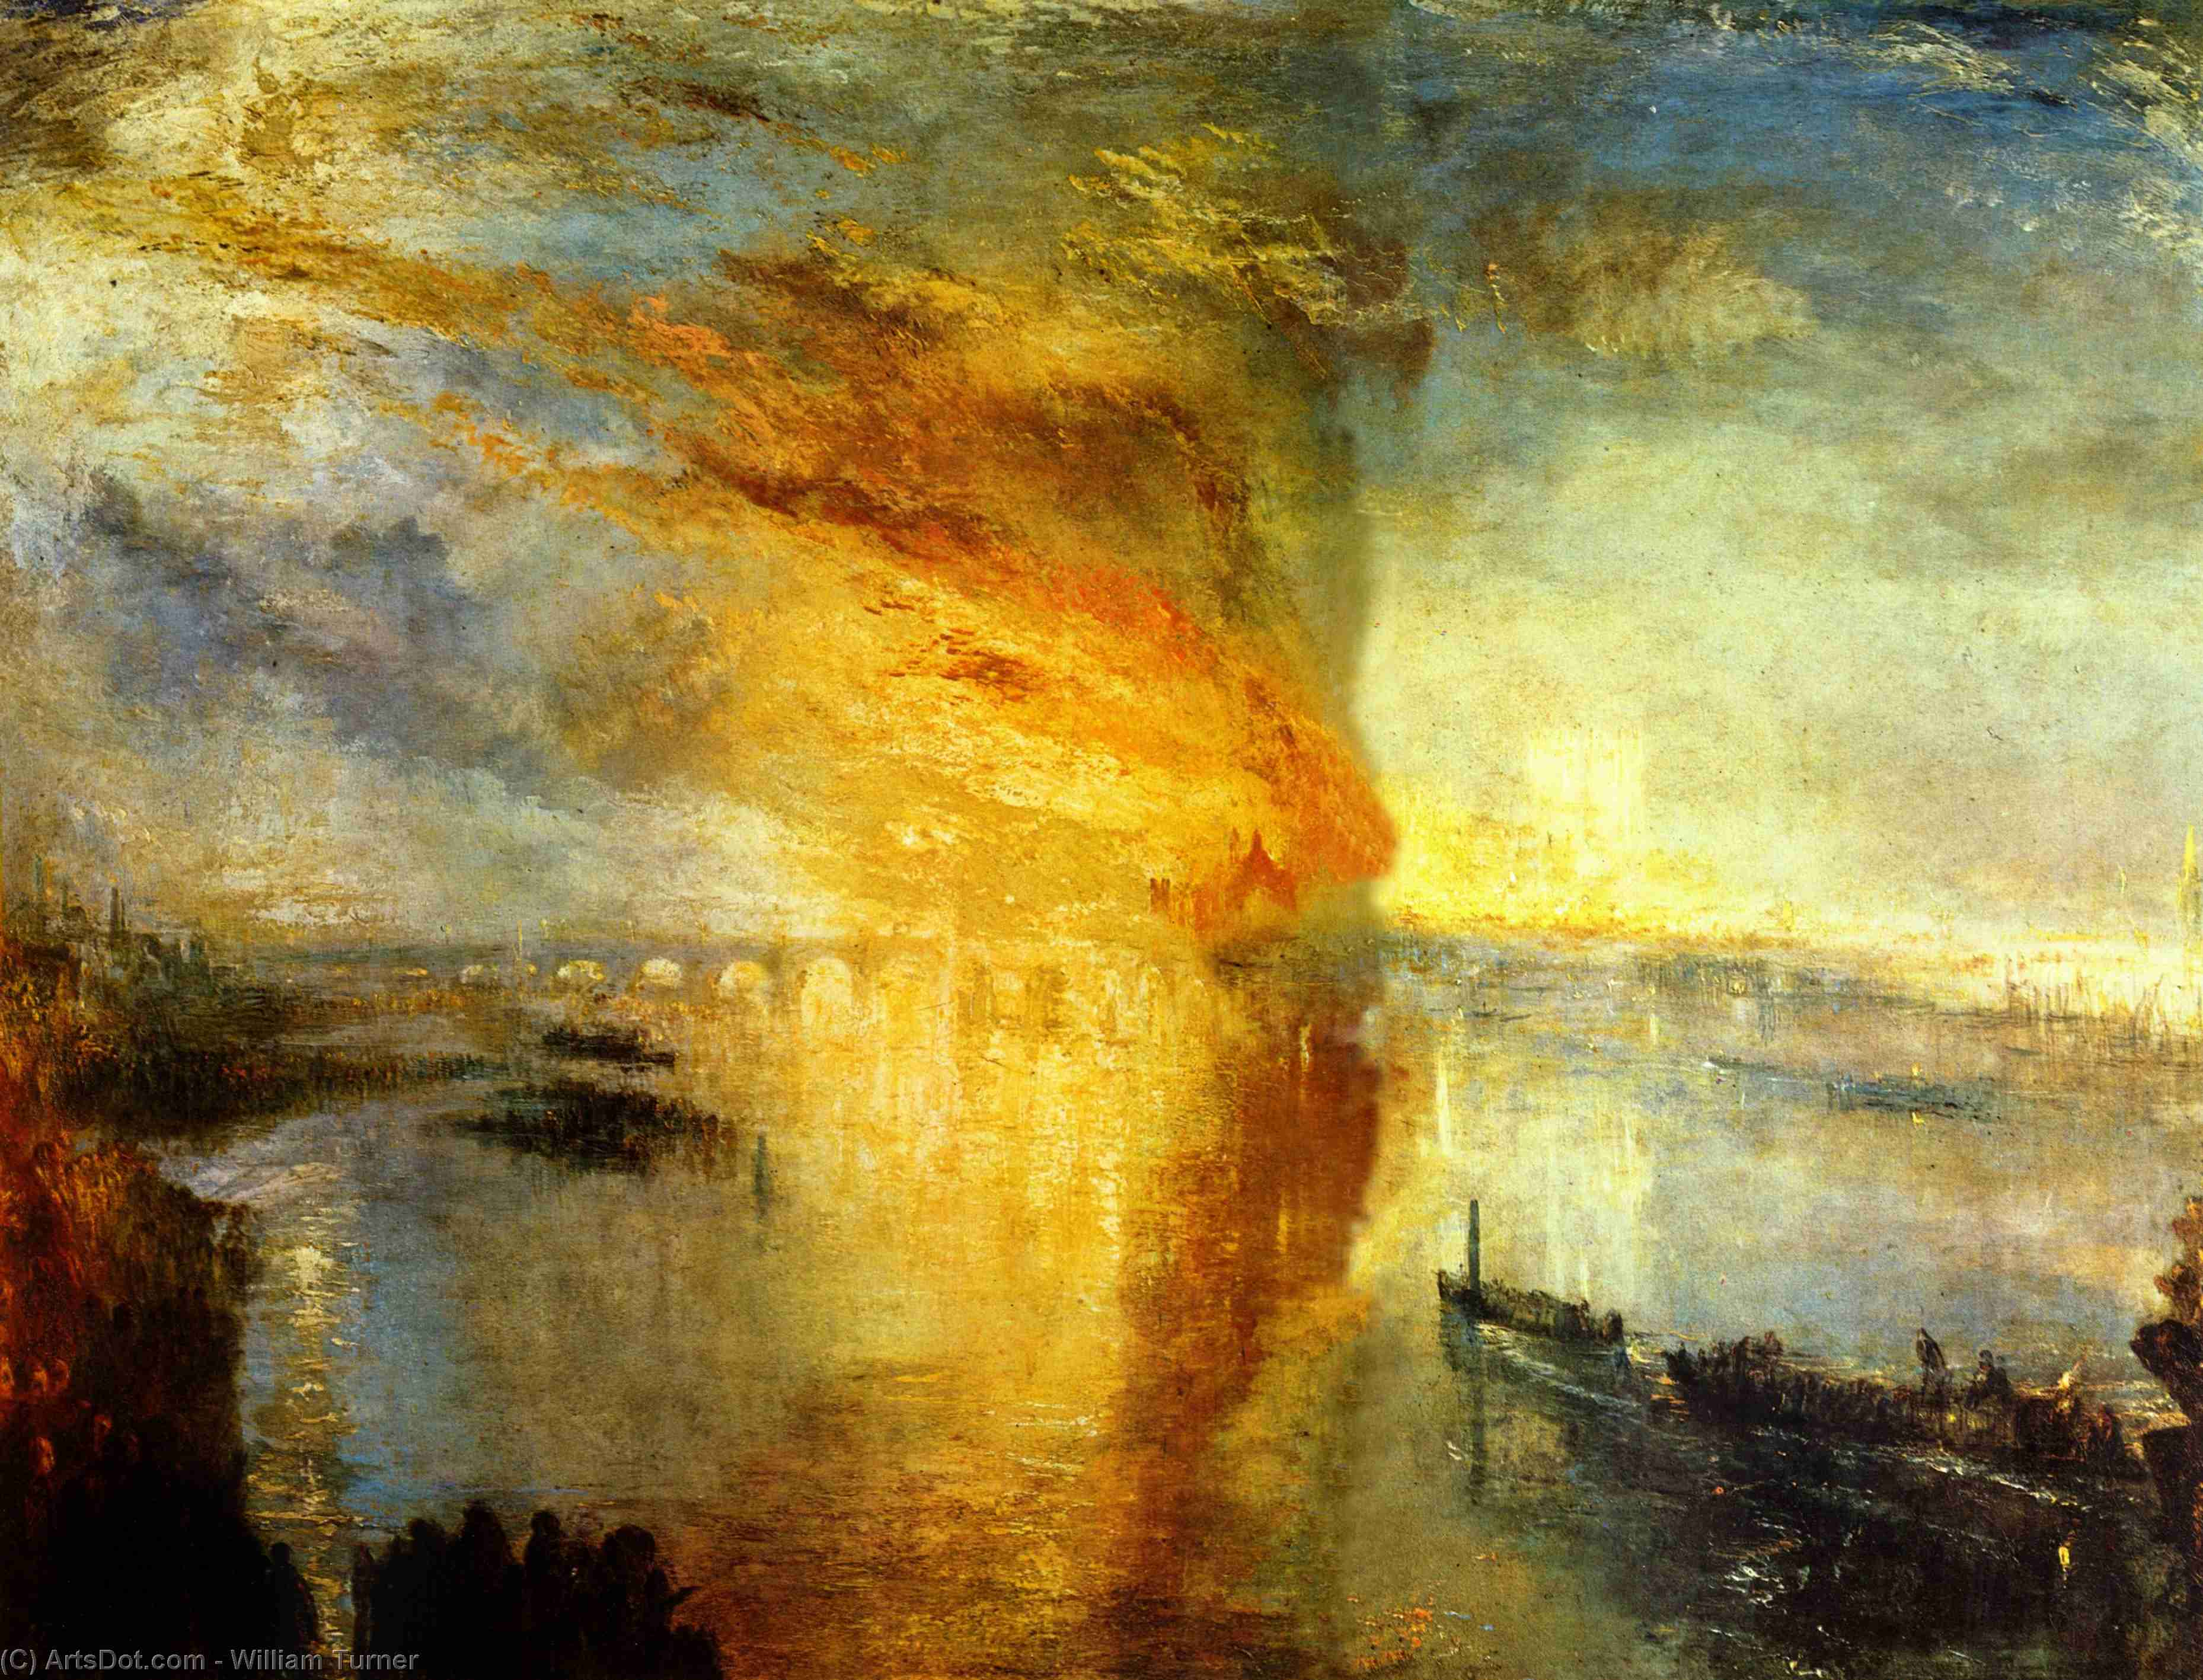 Wikioo.org - The Encyclopedia of Fine Arts - Painting, Artwork by William Turner - The Burning of the Houses of Parliament